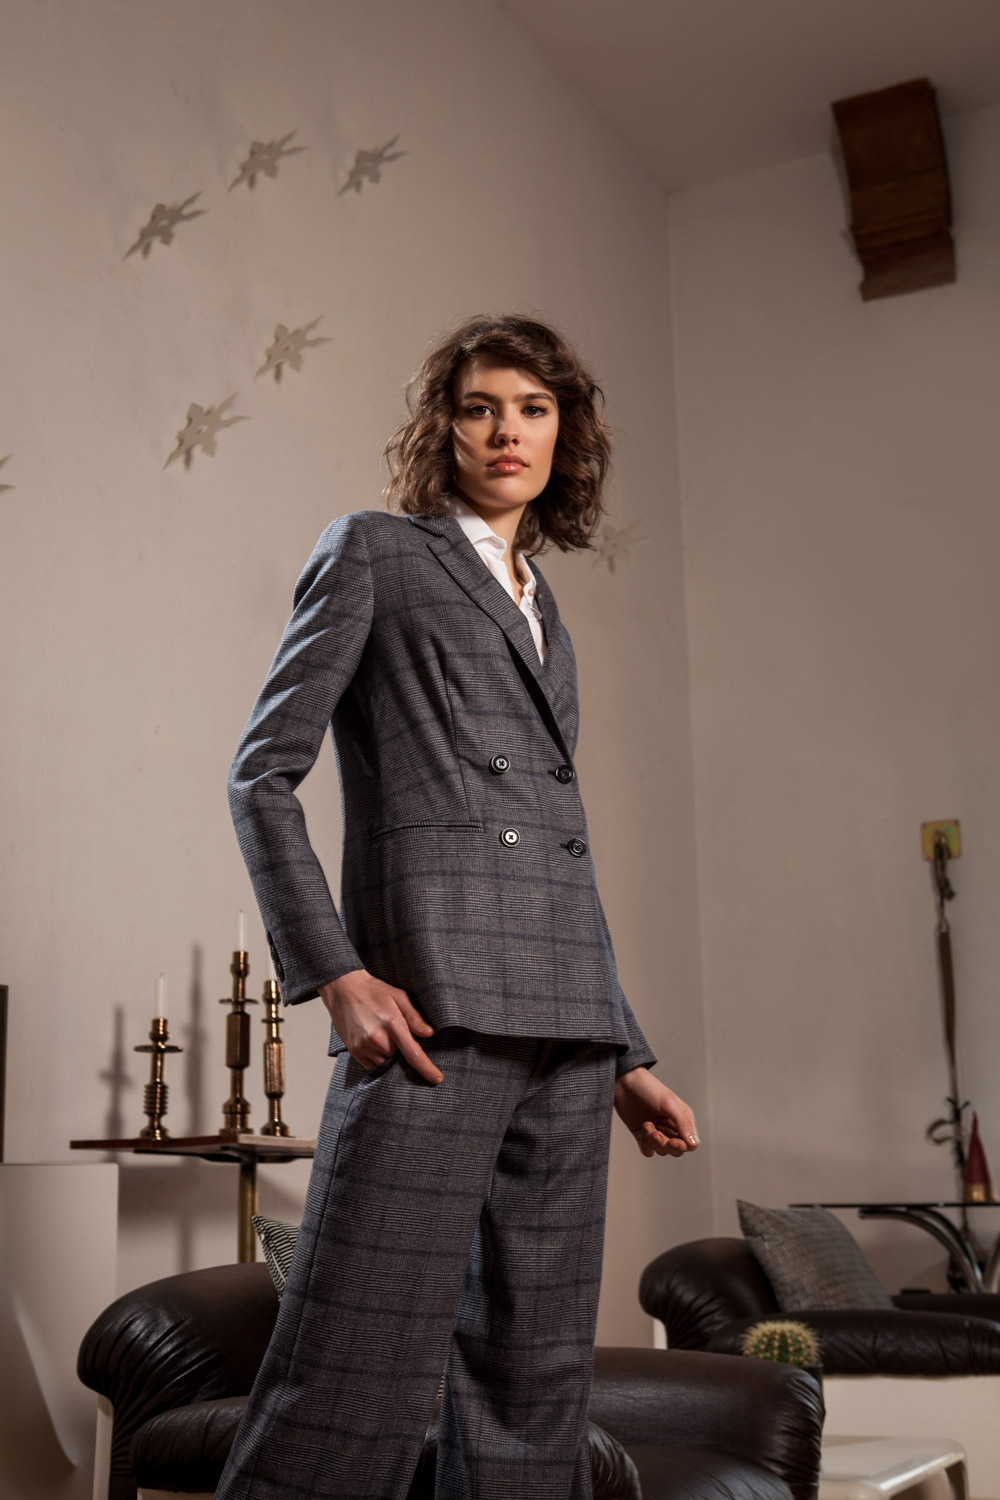 agnzia-comunicazione-napoli-portfolio-work-fashion-barba-napoli-donna-camiceria-fall-winter-2018-2019-04.jpg